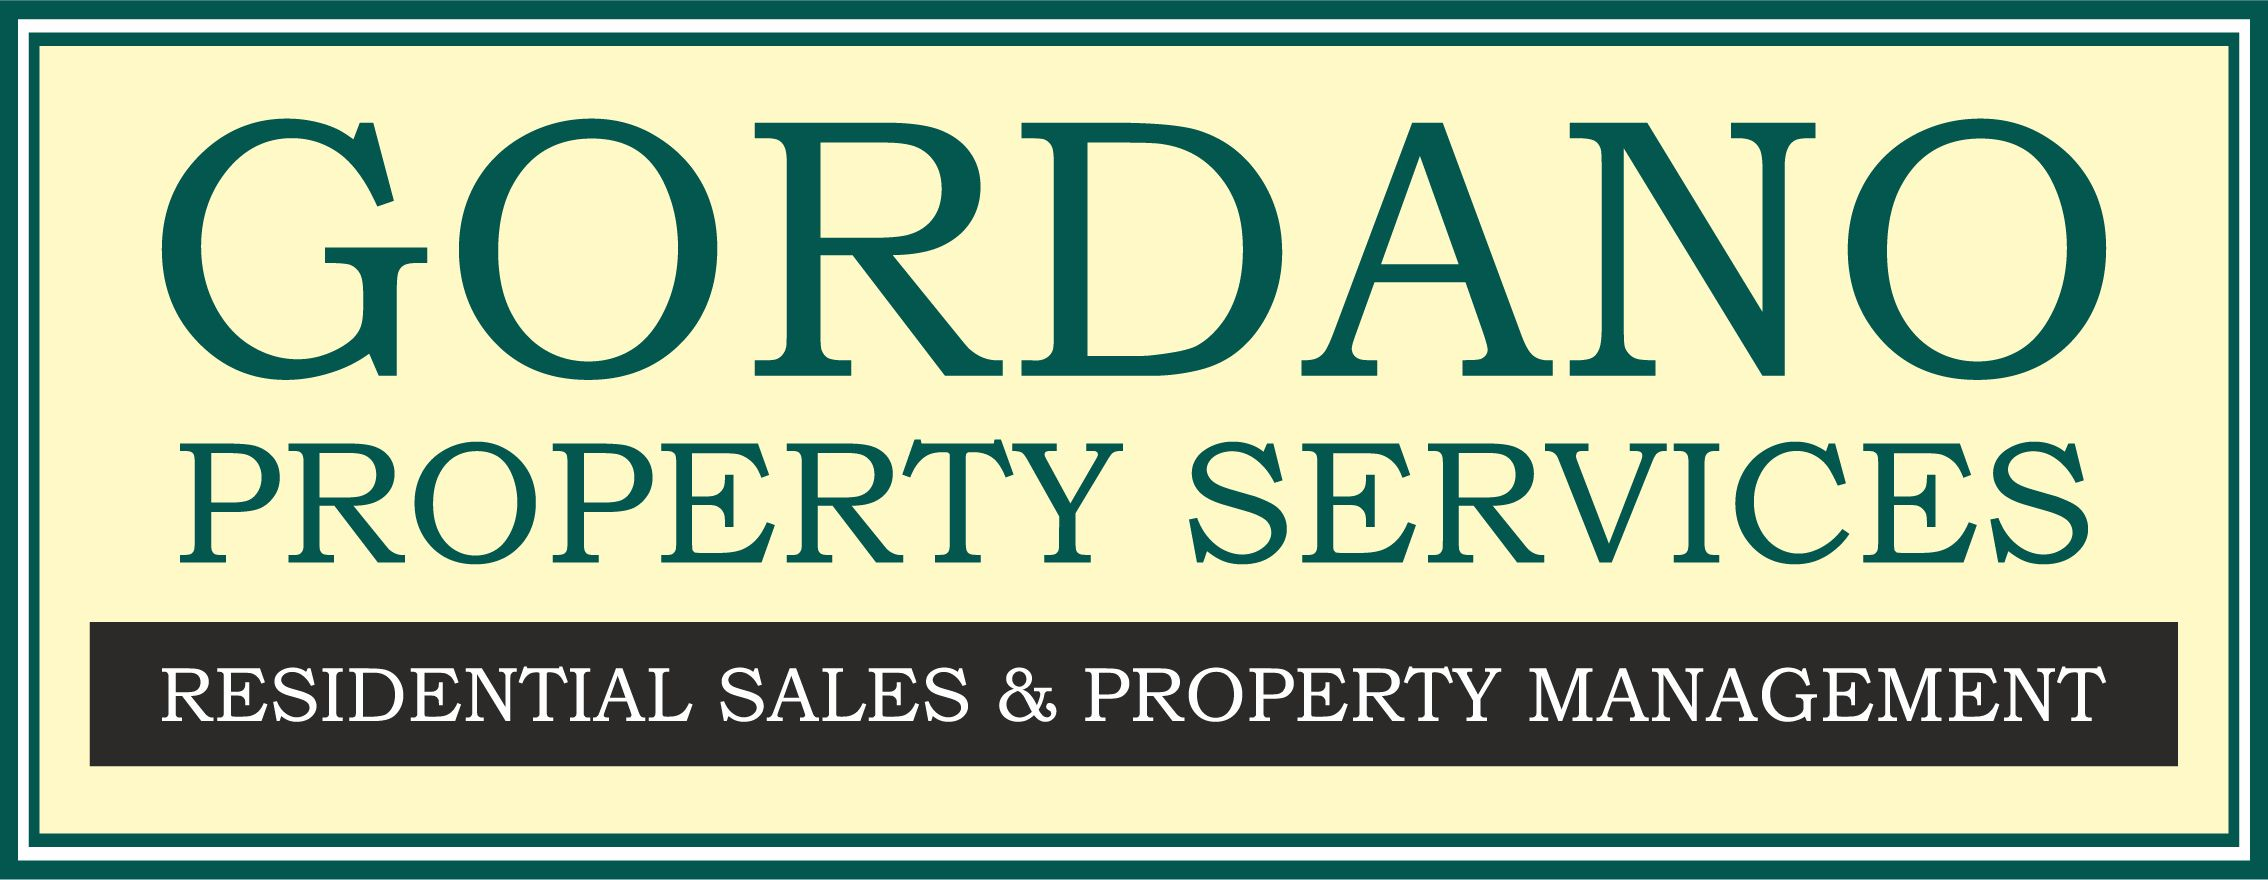 Gordano Property Services Ltd